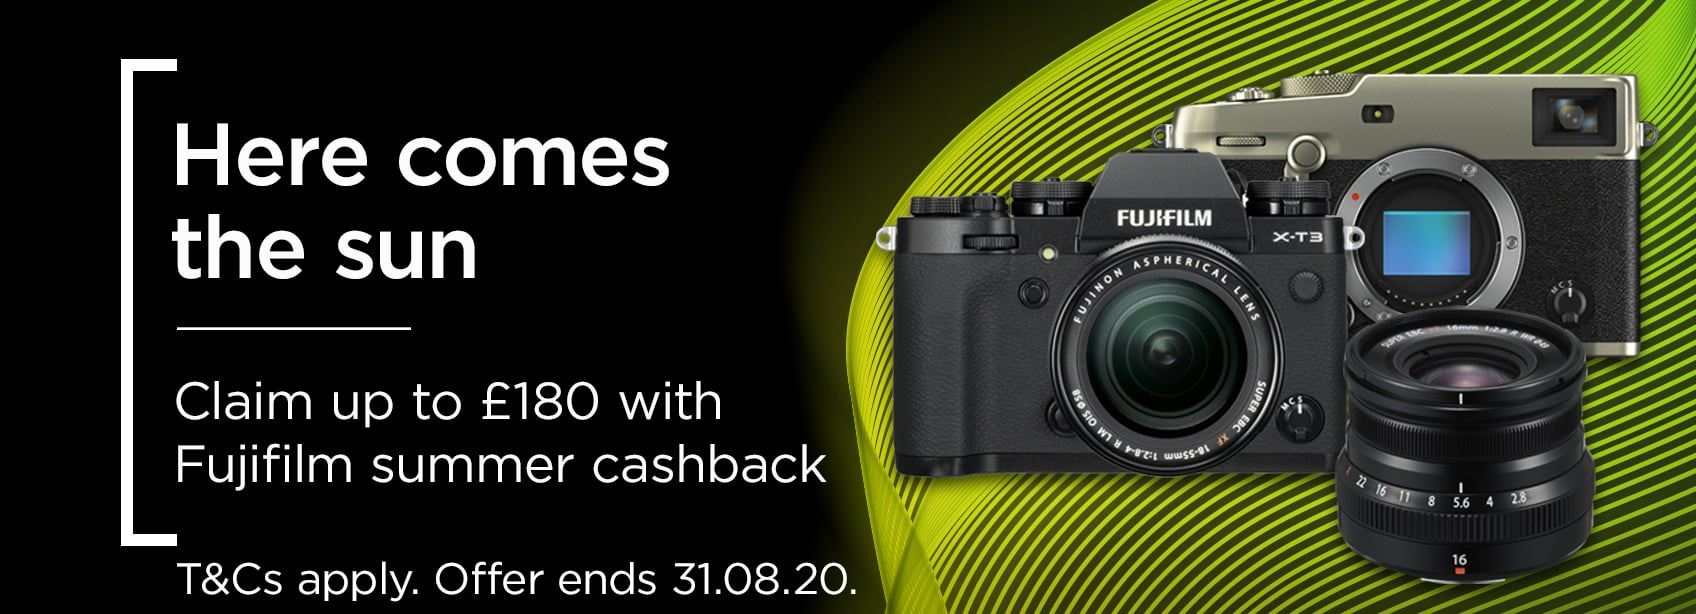 Here comes the sun - Claim up to £180 with Fujifilm summer cashback